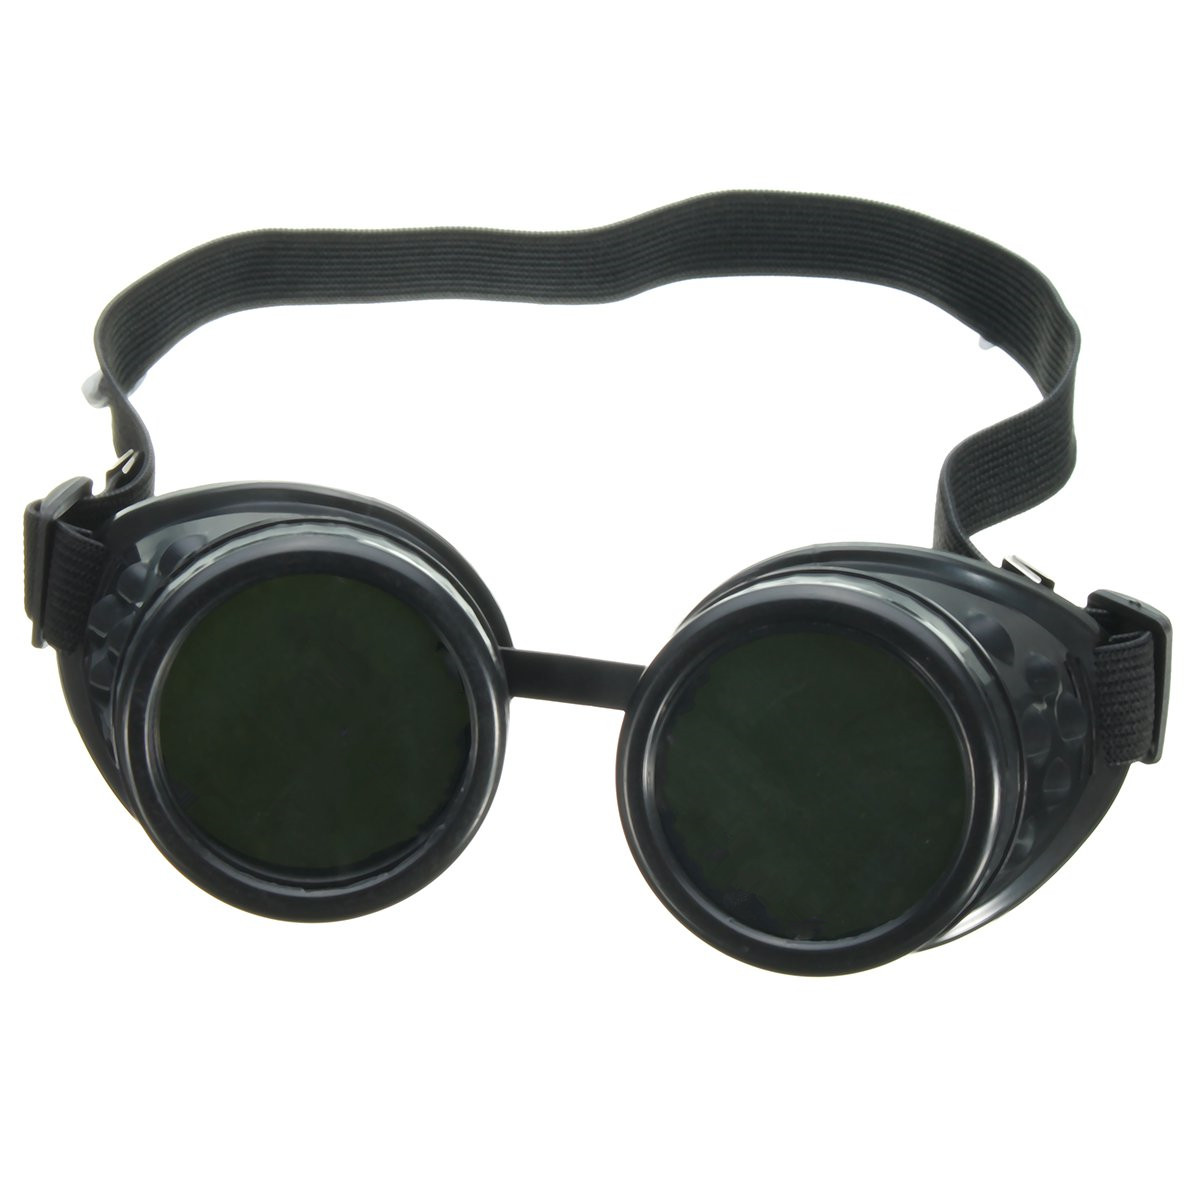 Welding Cutting Welders Industrial Safety Goggles Steampunk Cup Goggles Hot Workplace Safety Goggles цены